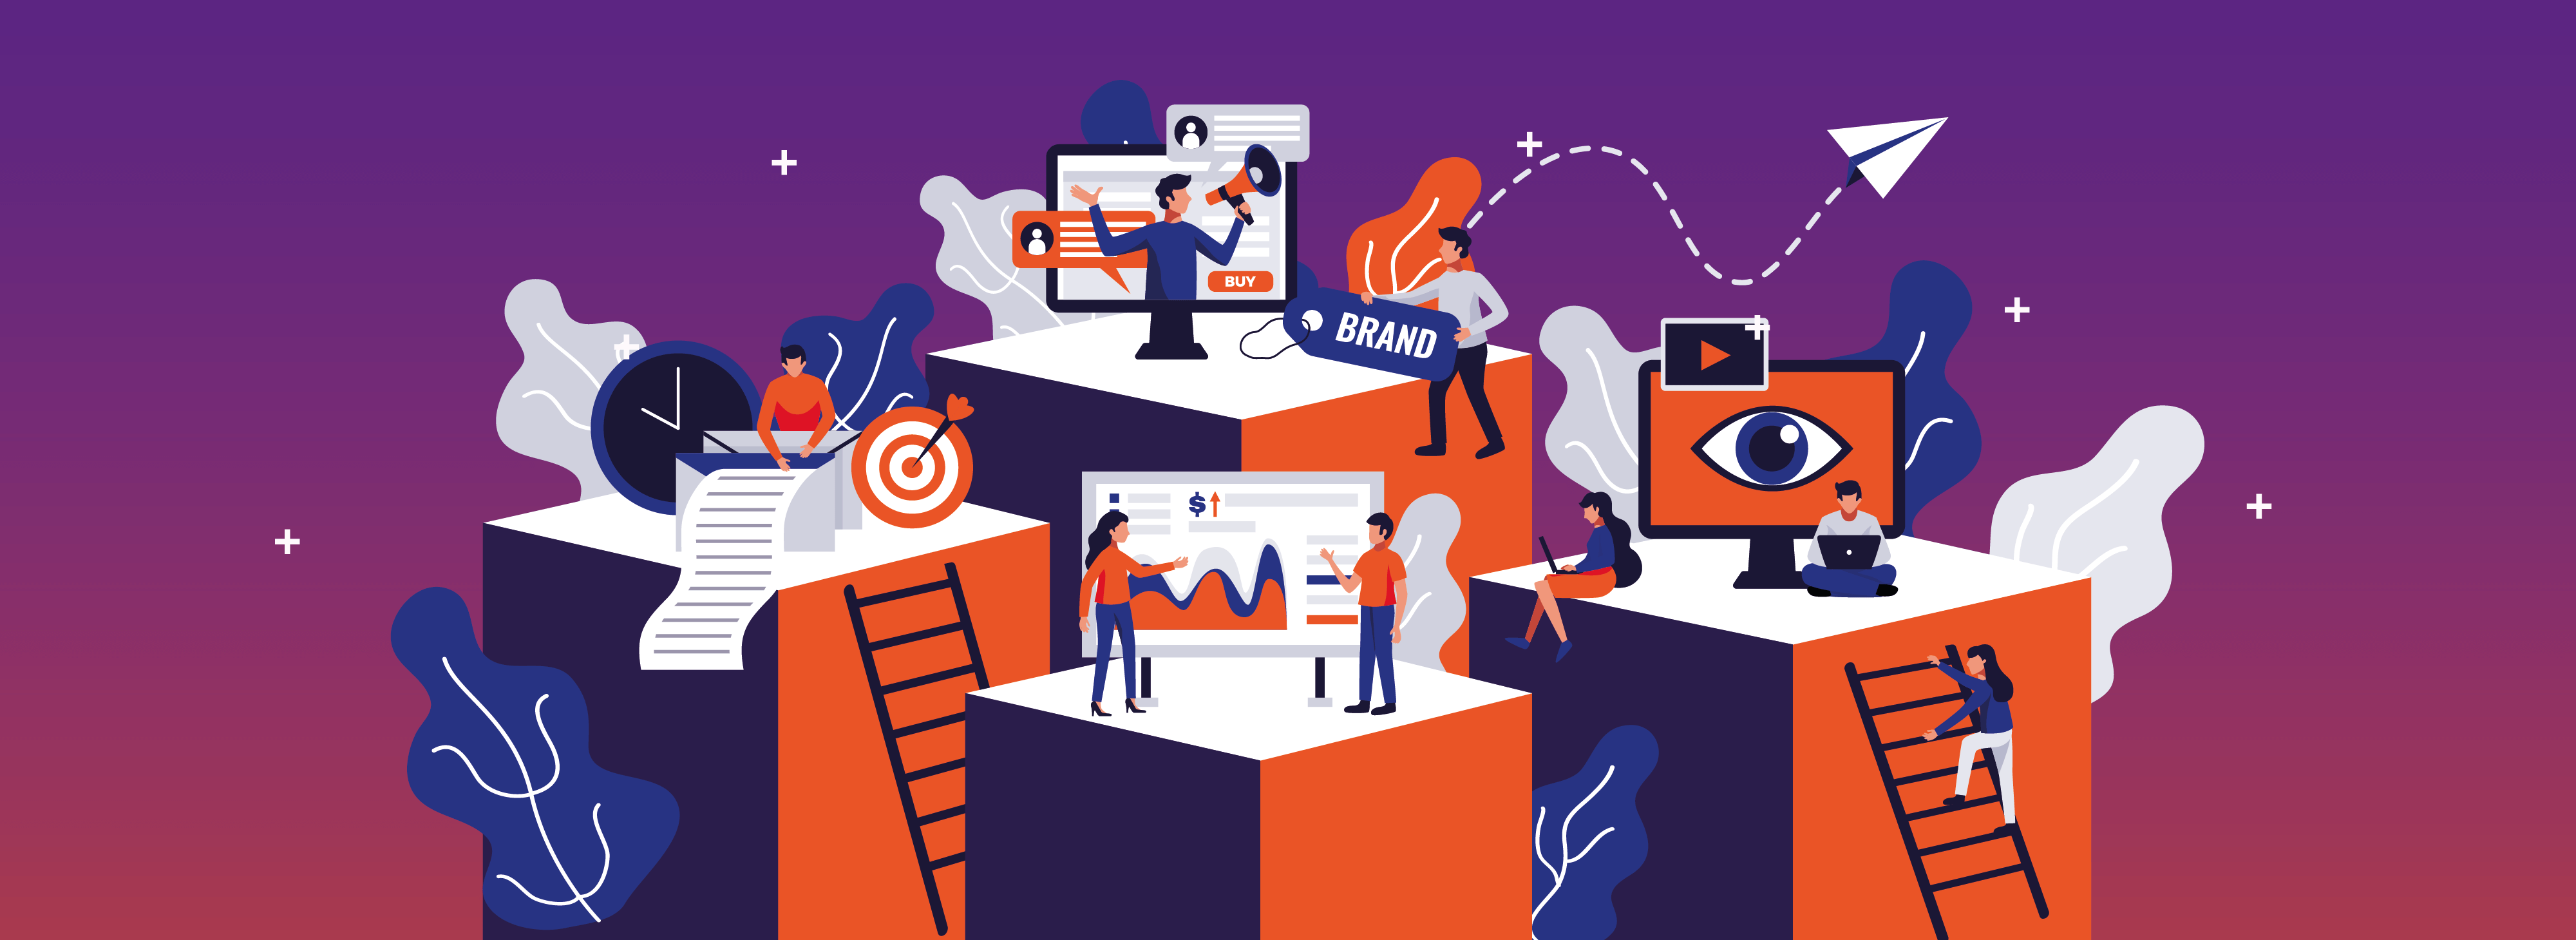 How to create a marketing mix that is effective in 2021